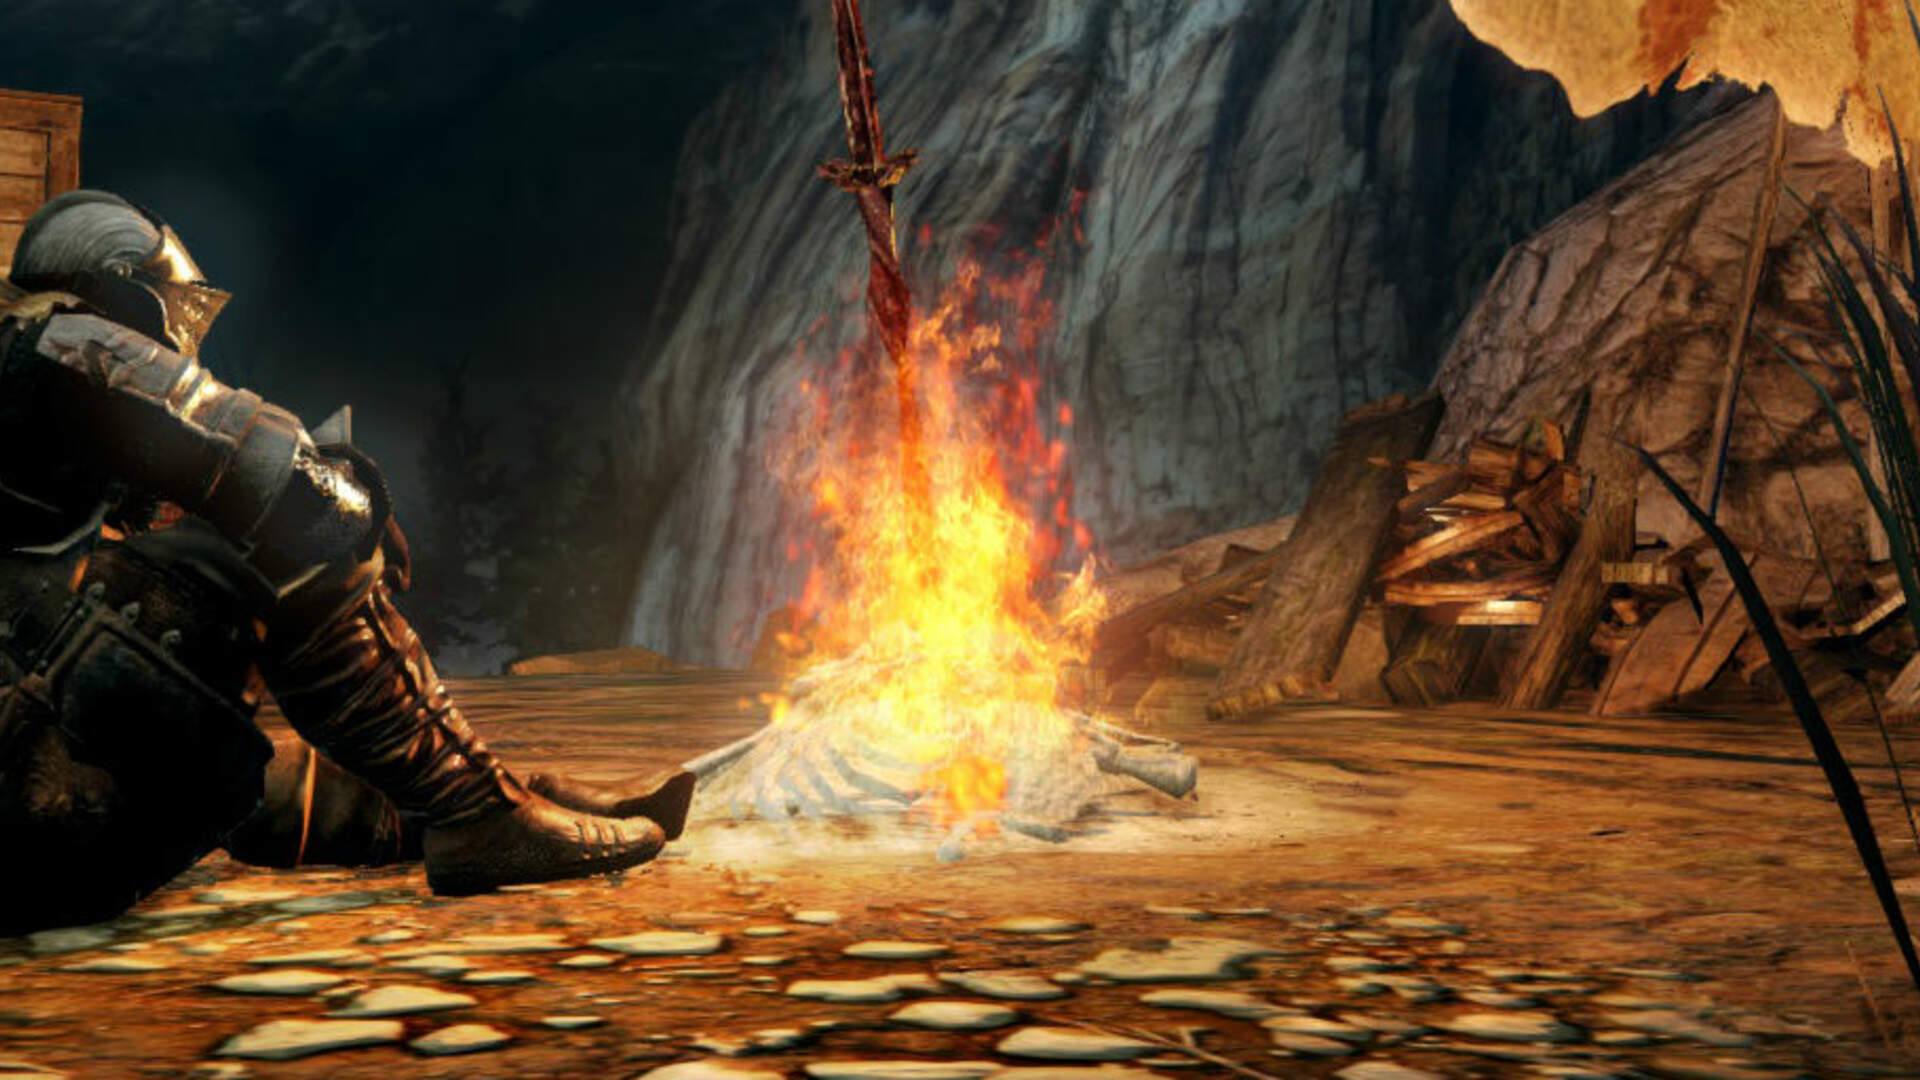 Dark Souls 2 Guide: Head Through Harvest Valley to Earthen Peak and the Iron Keep